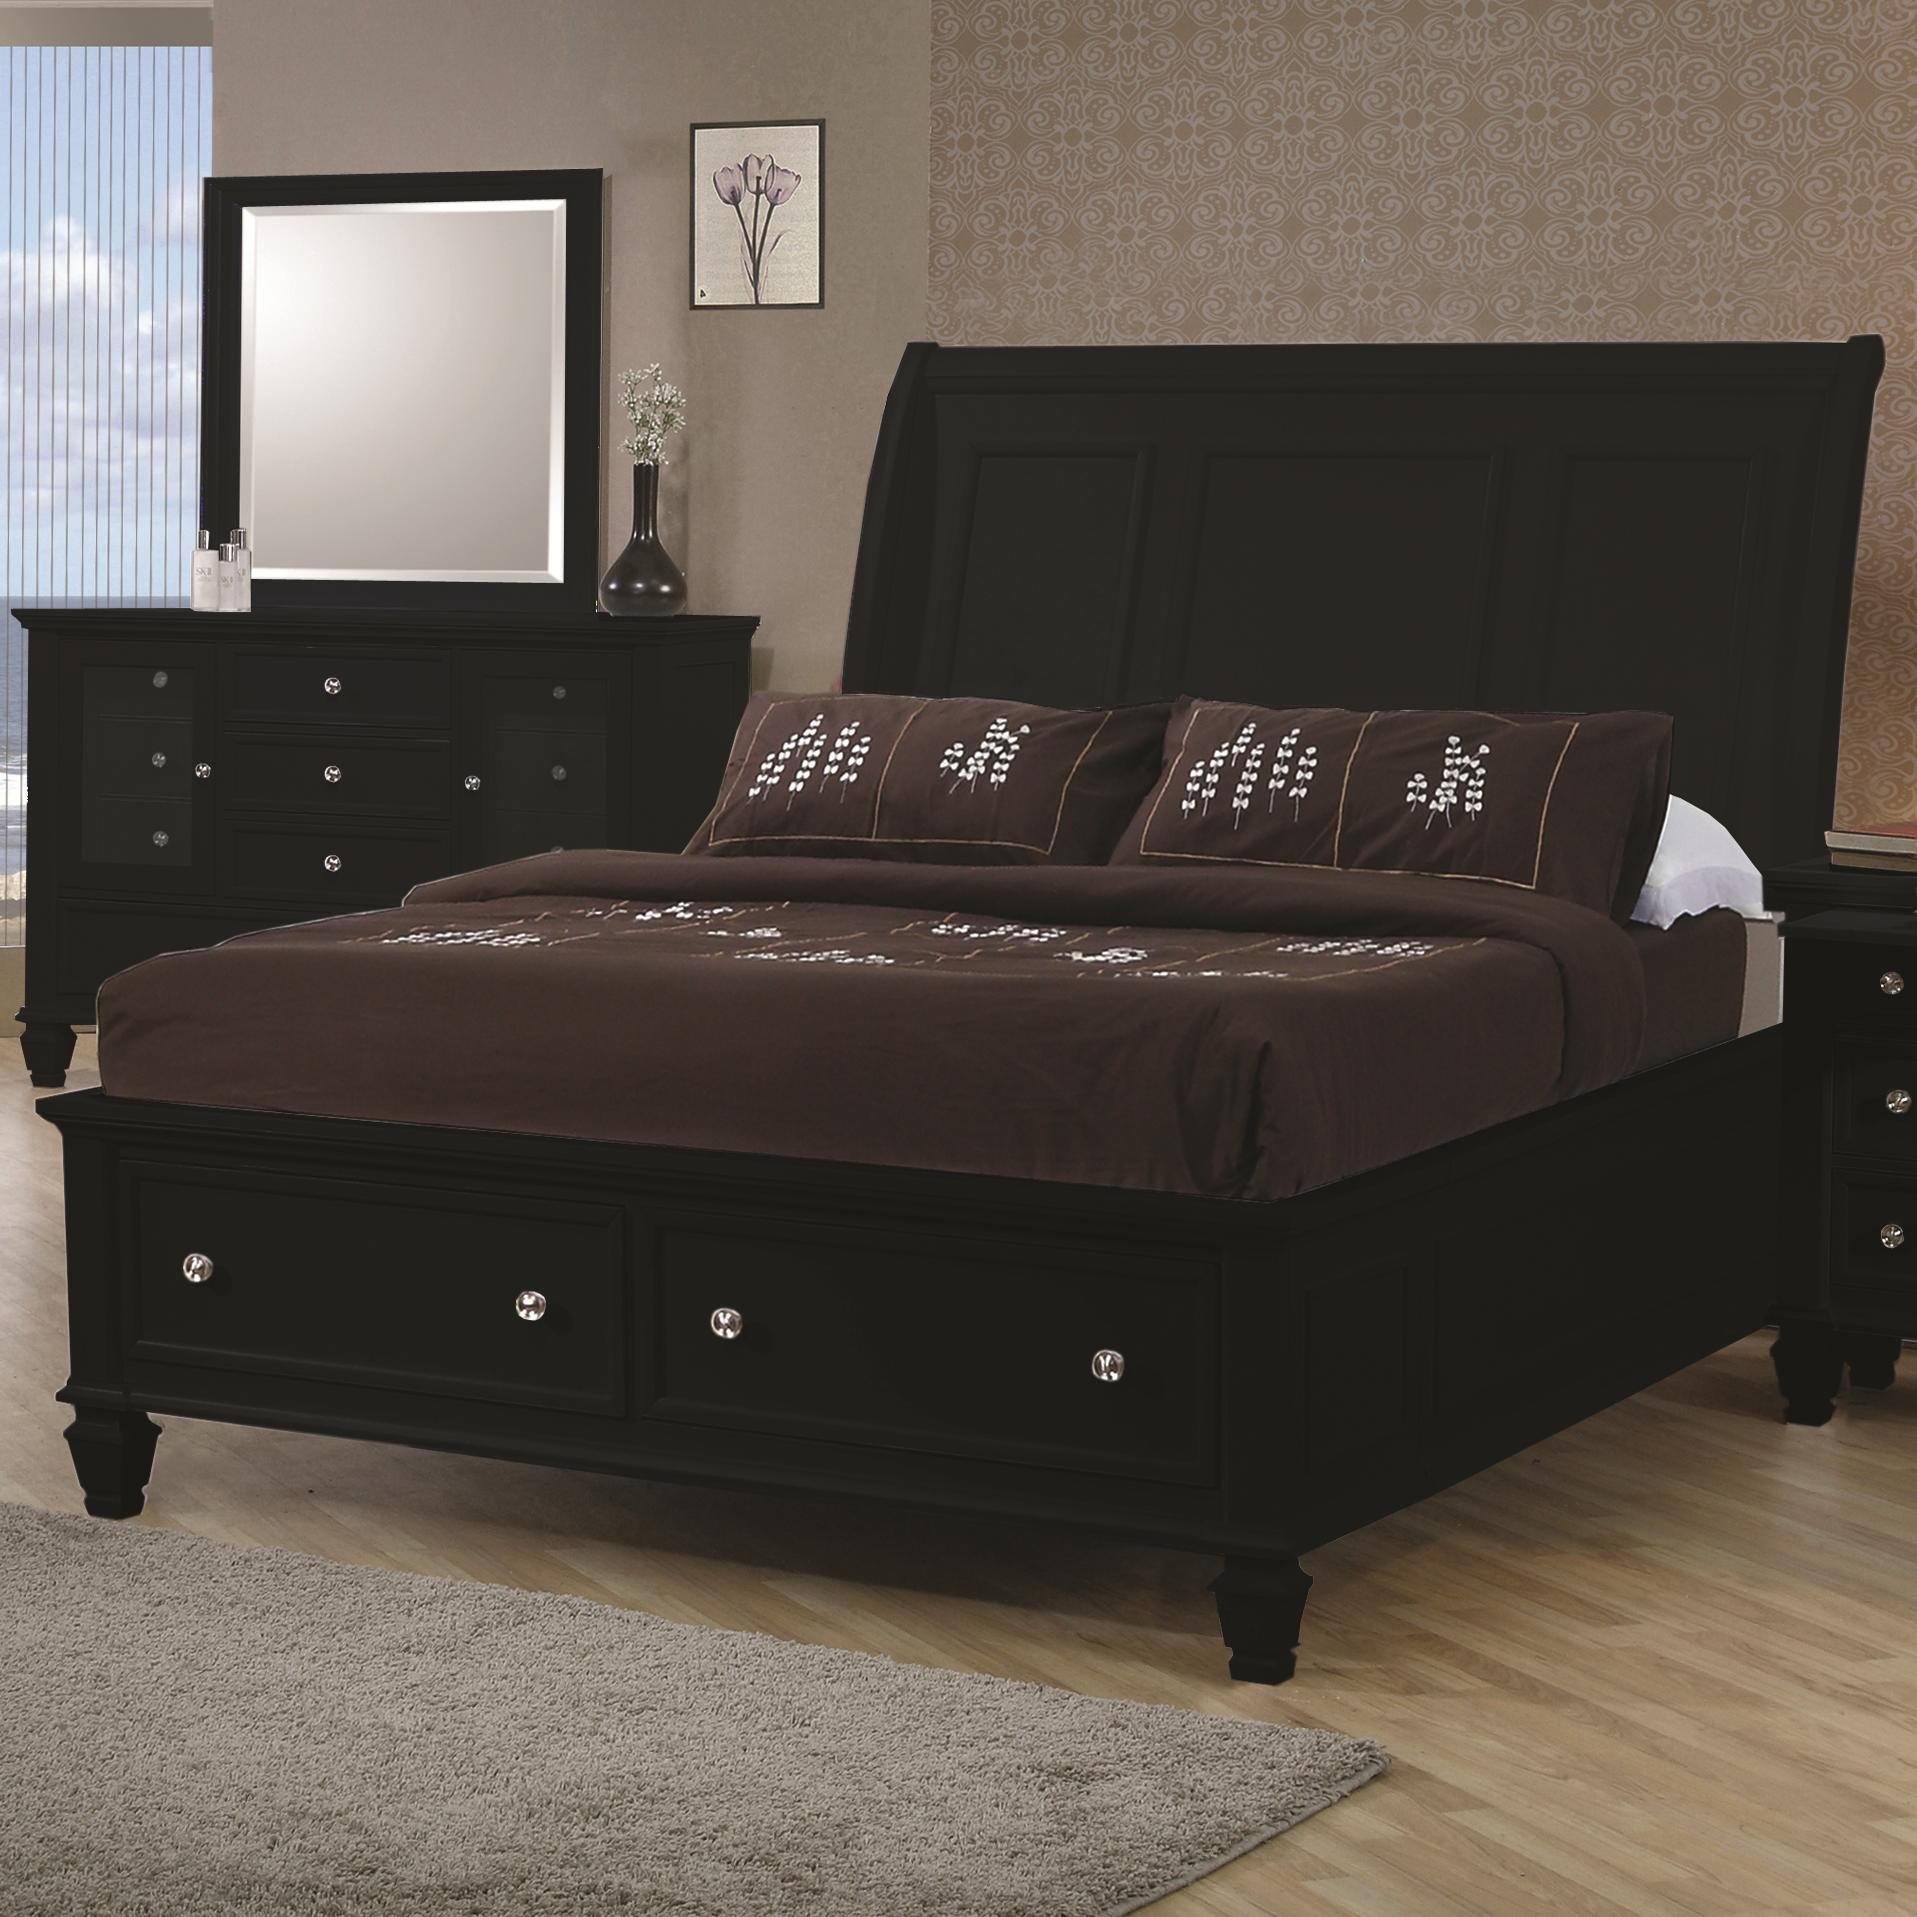 Coaster Sandy Beach King Sleigh Bed - Item Number: 201329KE